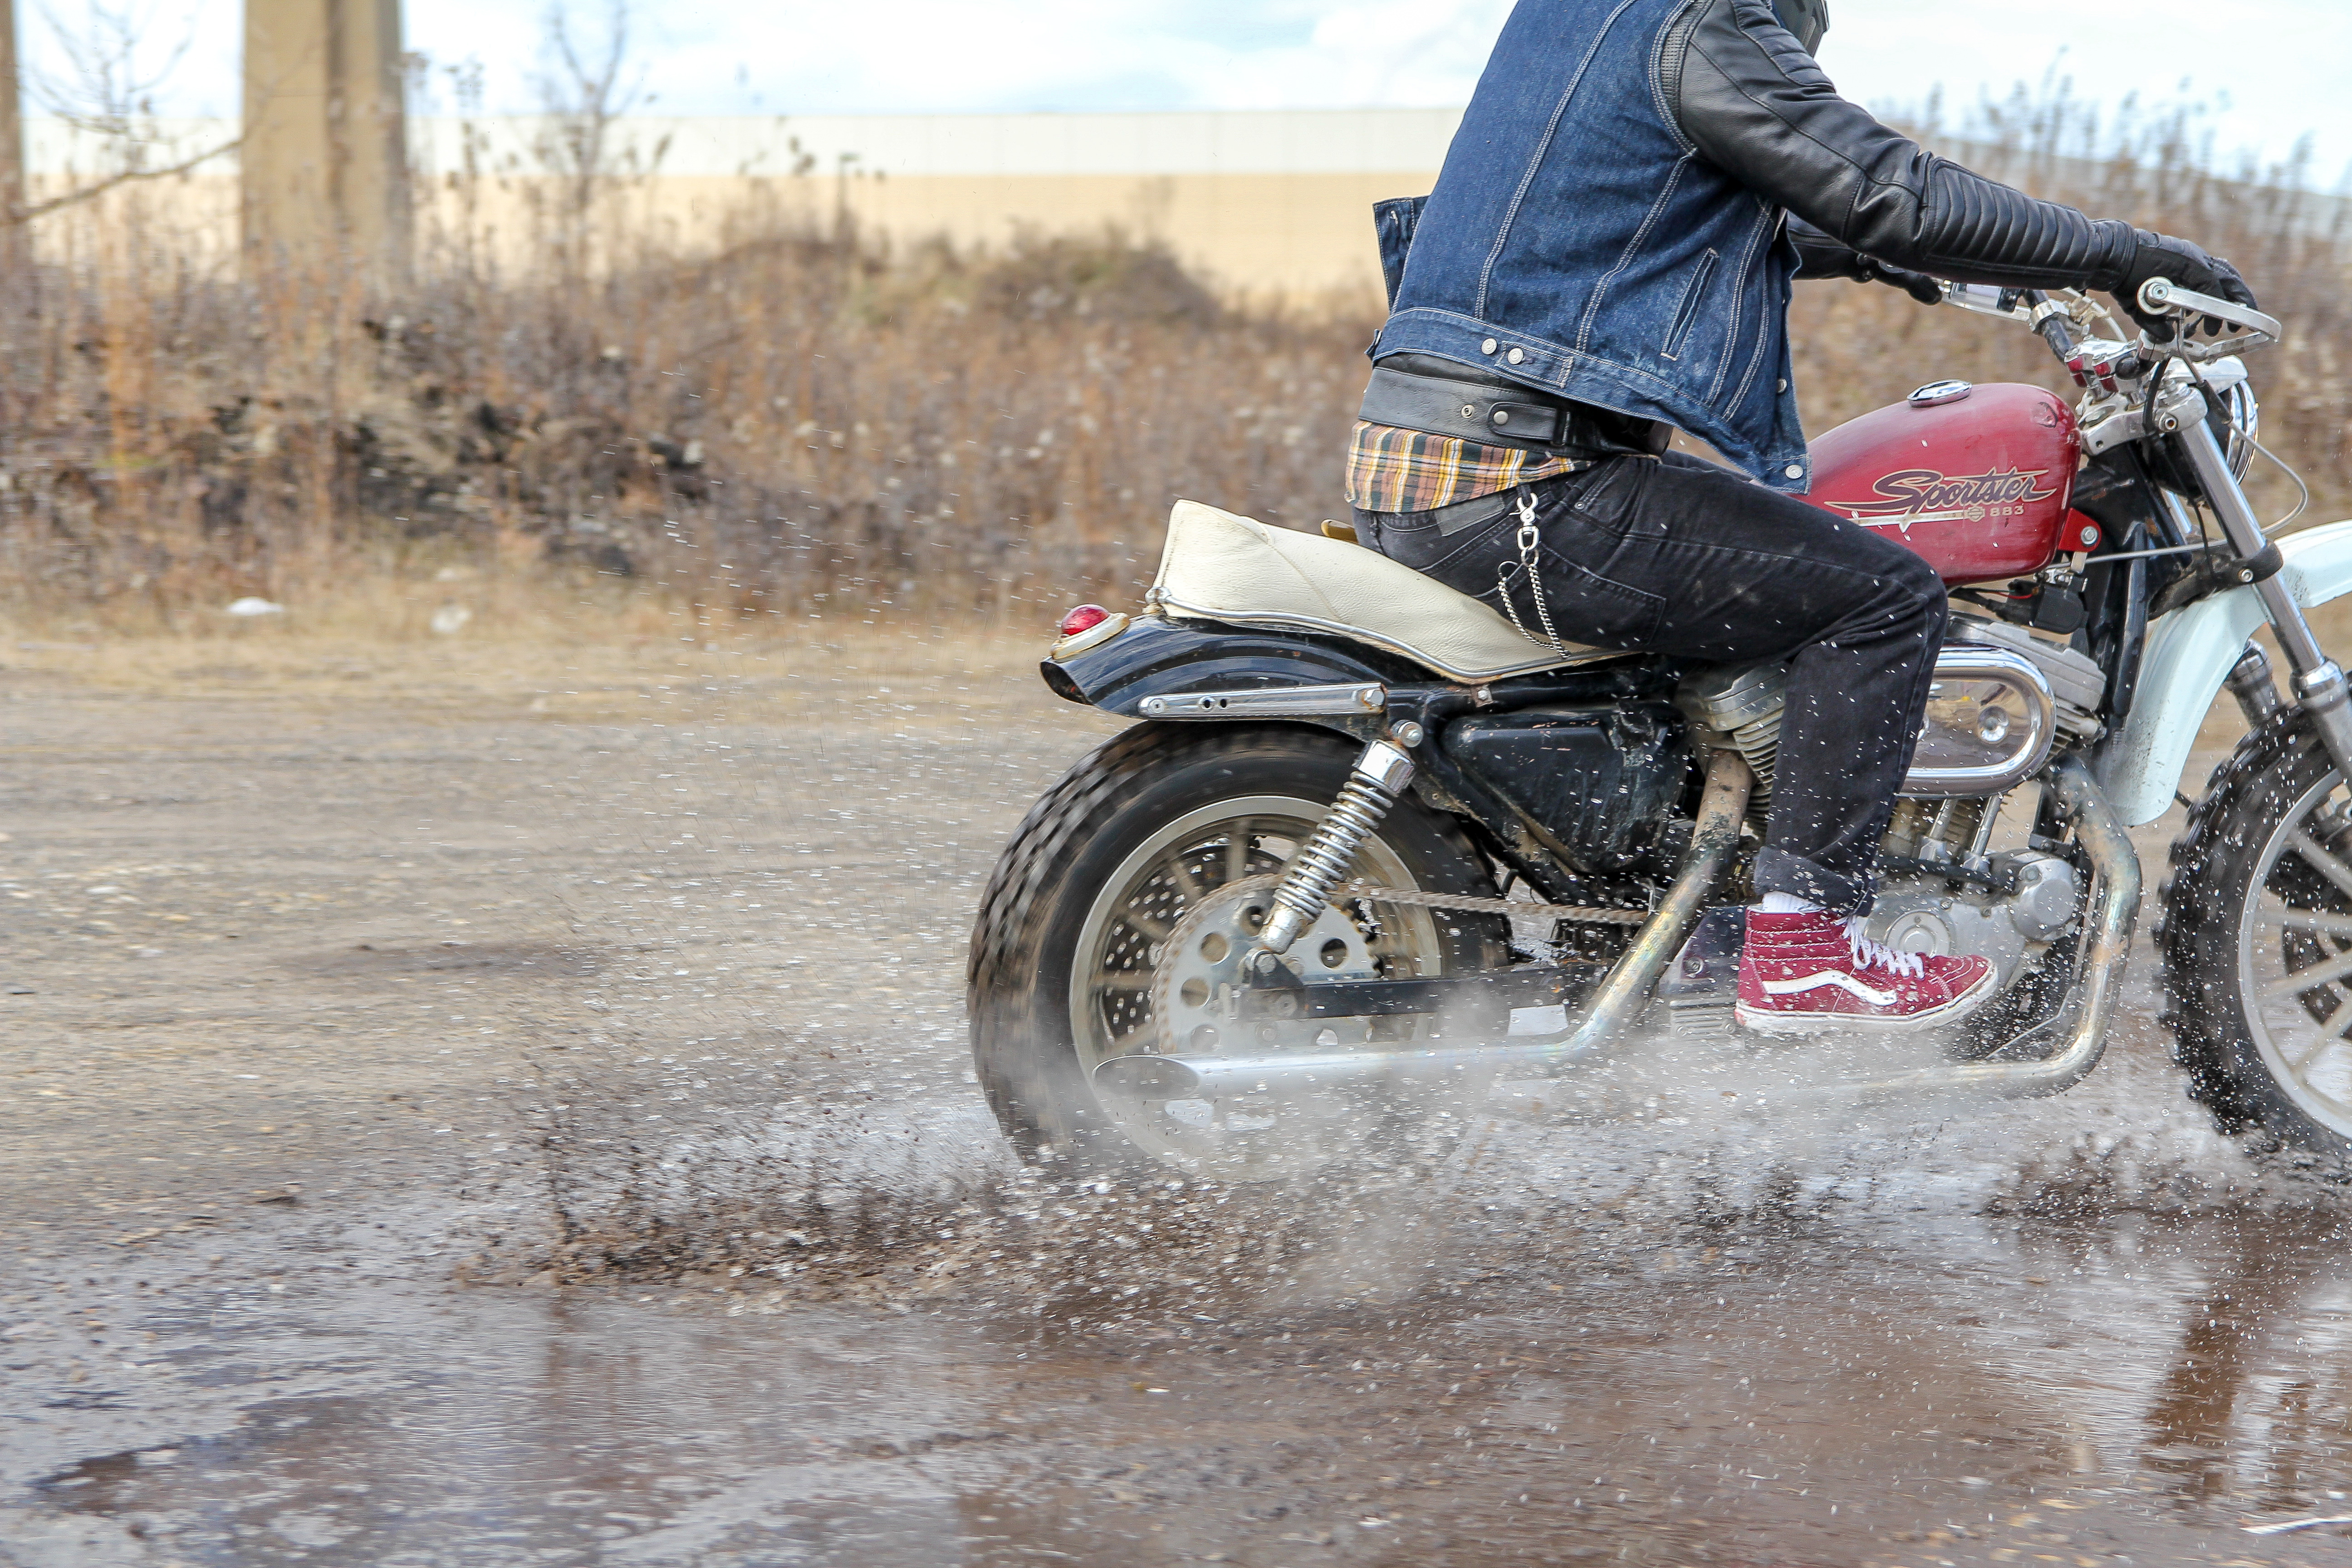 Ride whatcha got: Taking a Sportster on two dual-sport rides